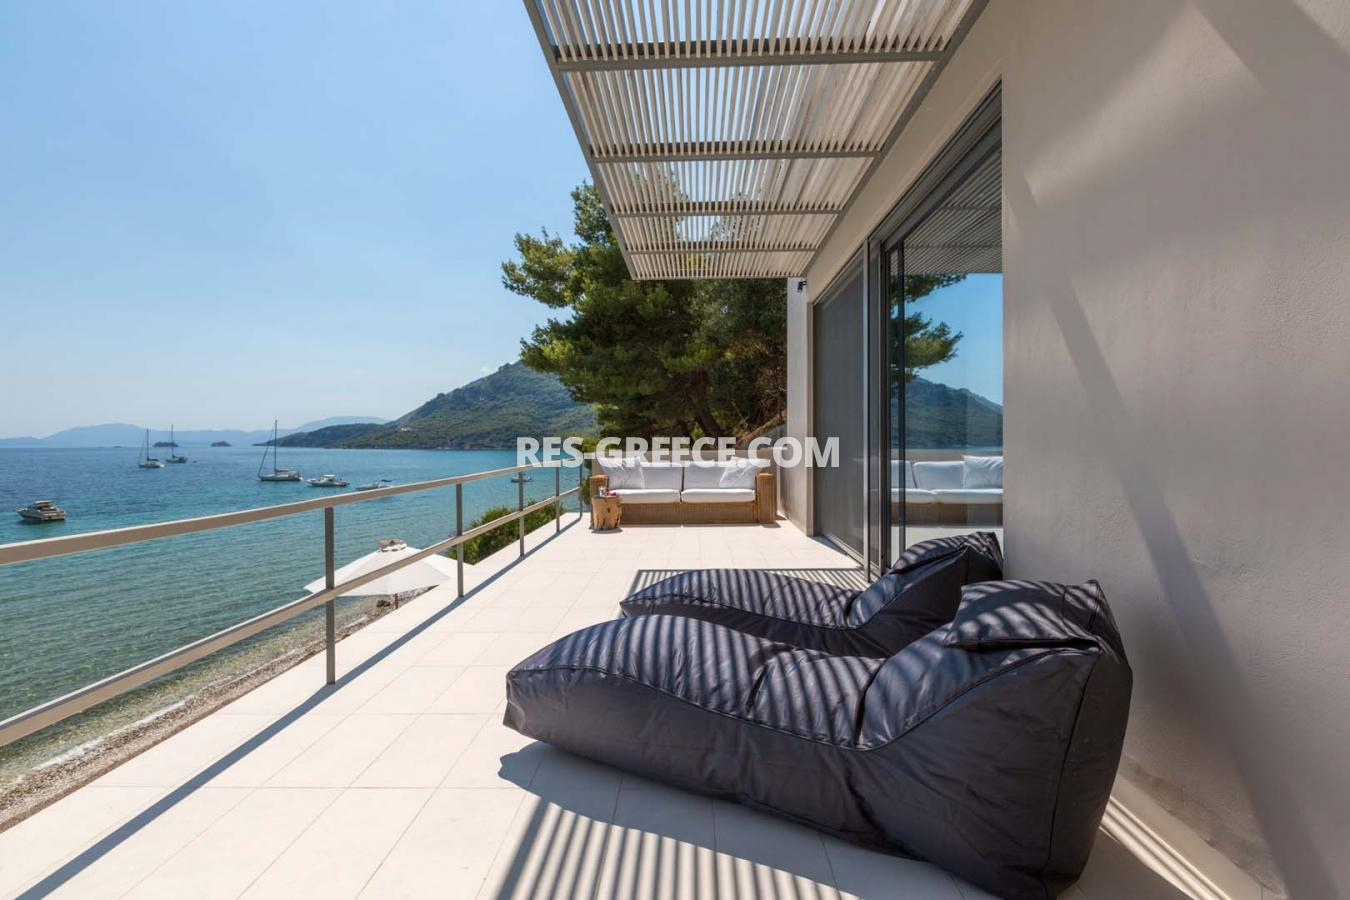 Kastor, Epir, Greece - off-plan villa project first line to the sea - Photo 9